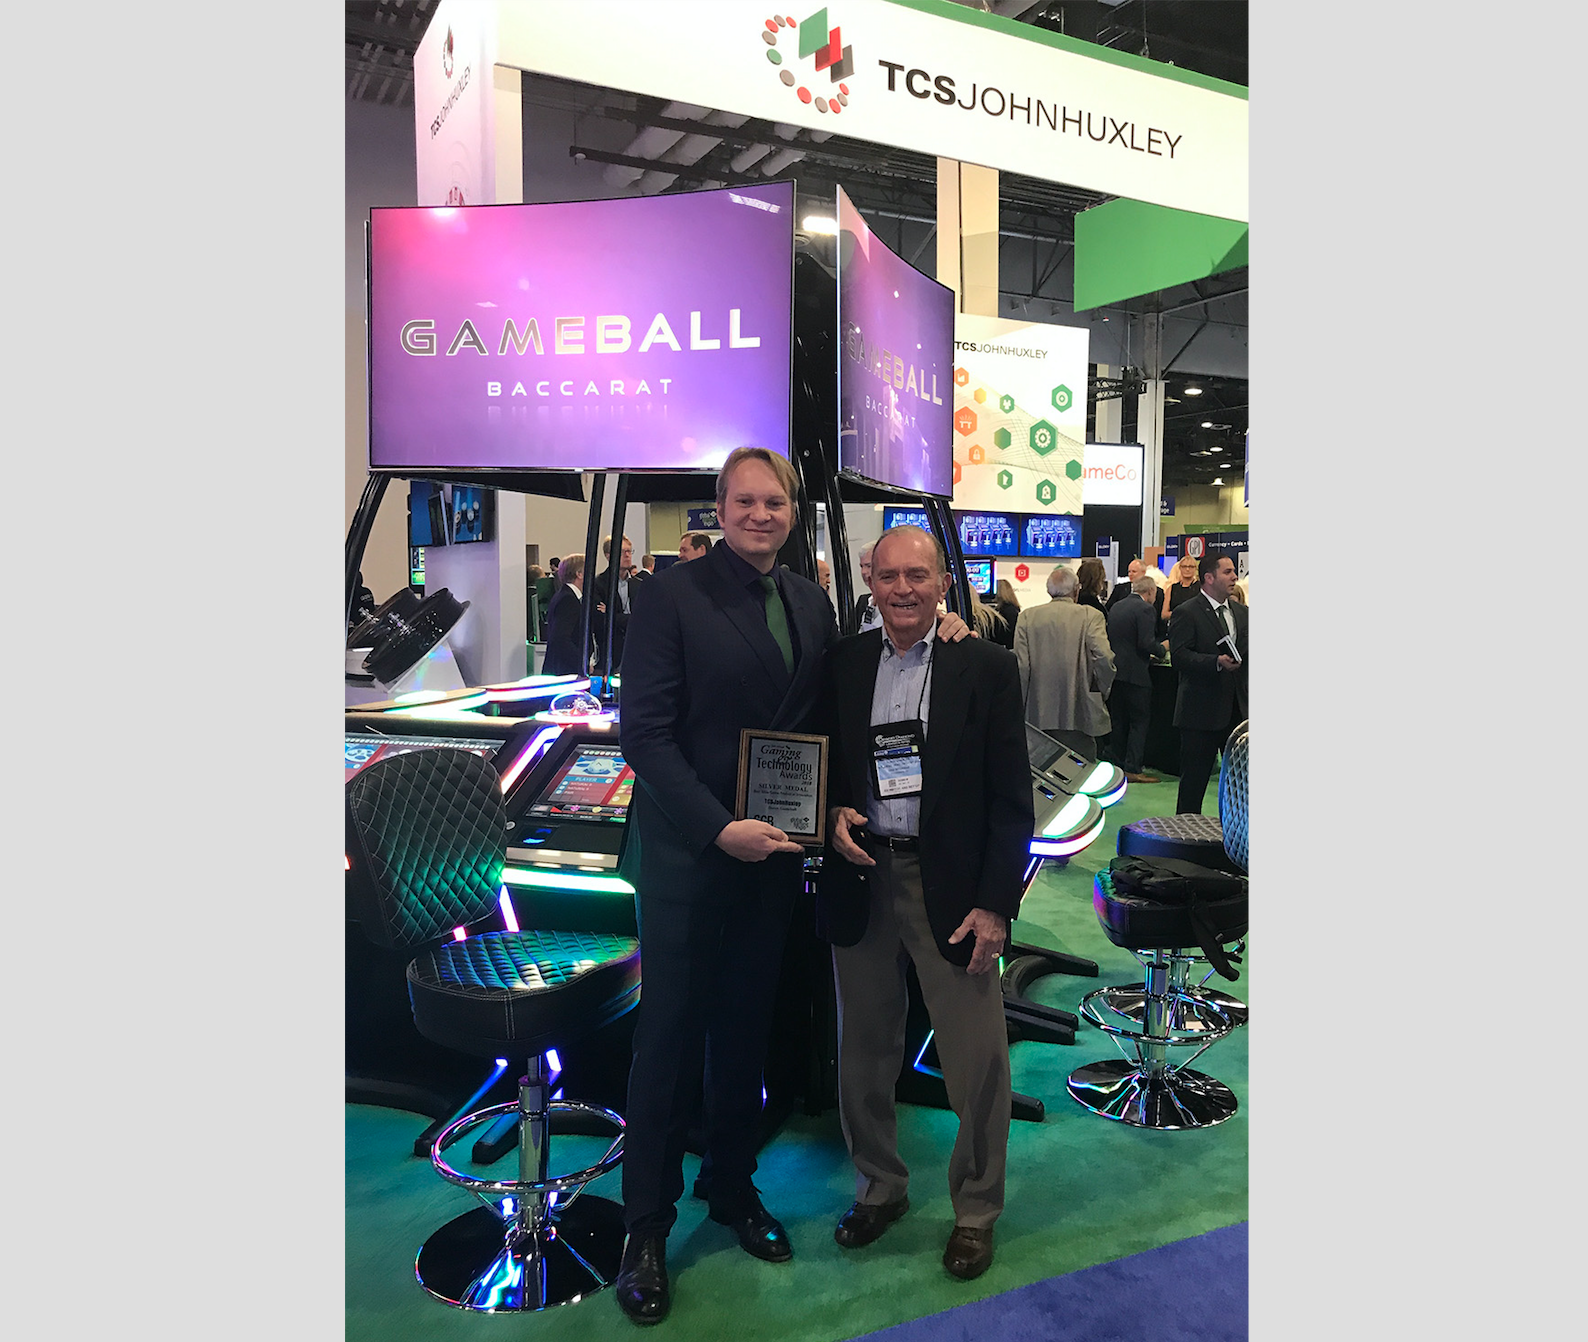 TCSJOHNHUXLEY wins Gaming & Technology Silver Award at G2E